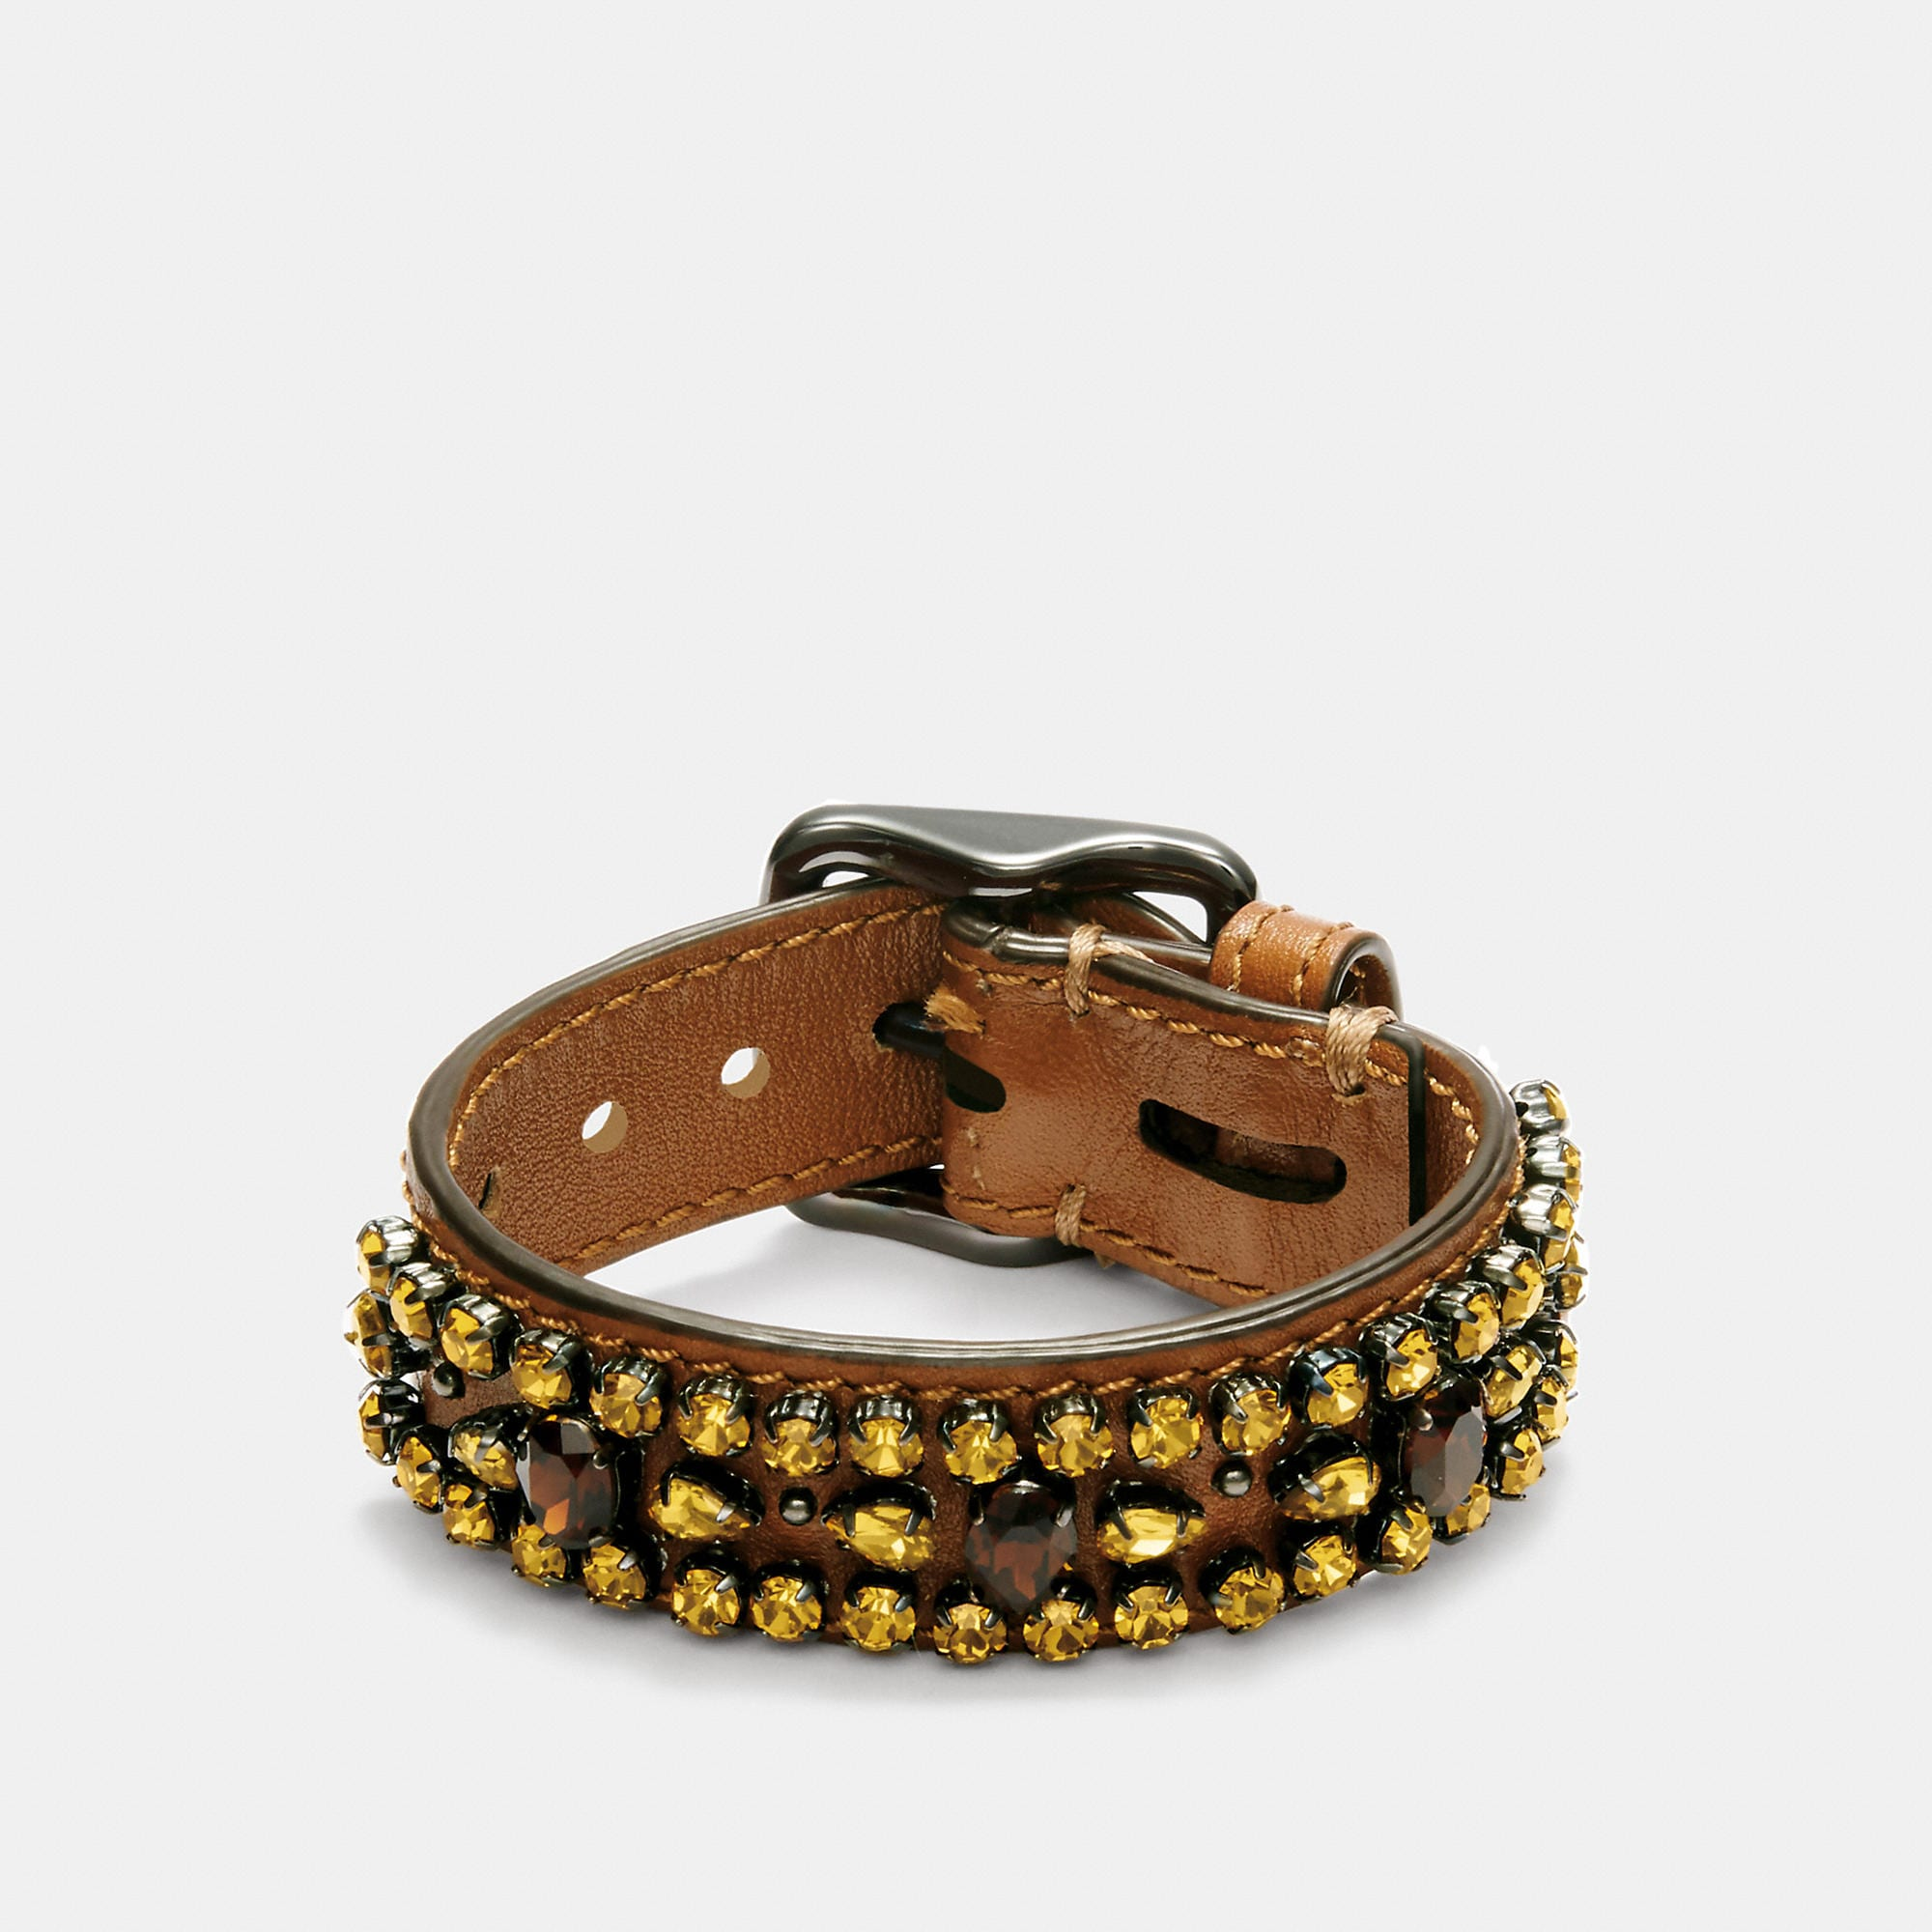 Coach 1941 Wide Leather Encrusted Crystal Bracelet